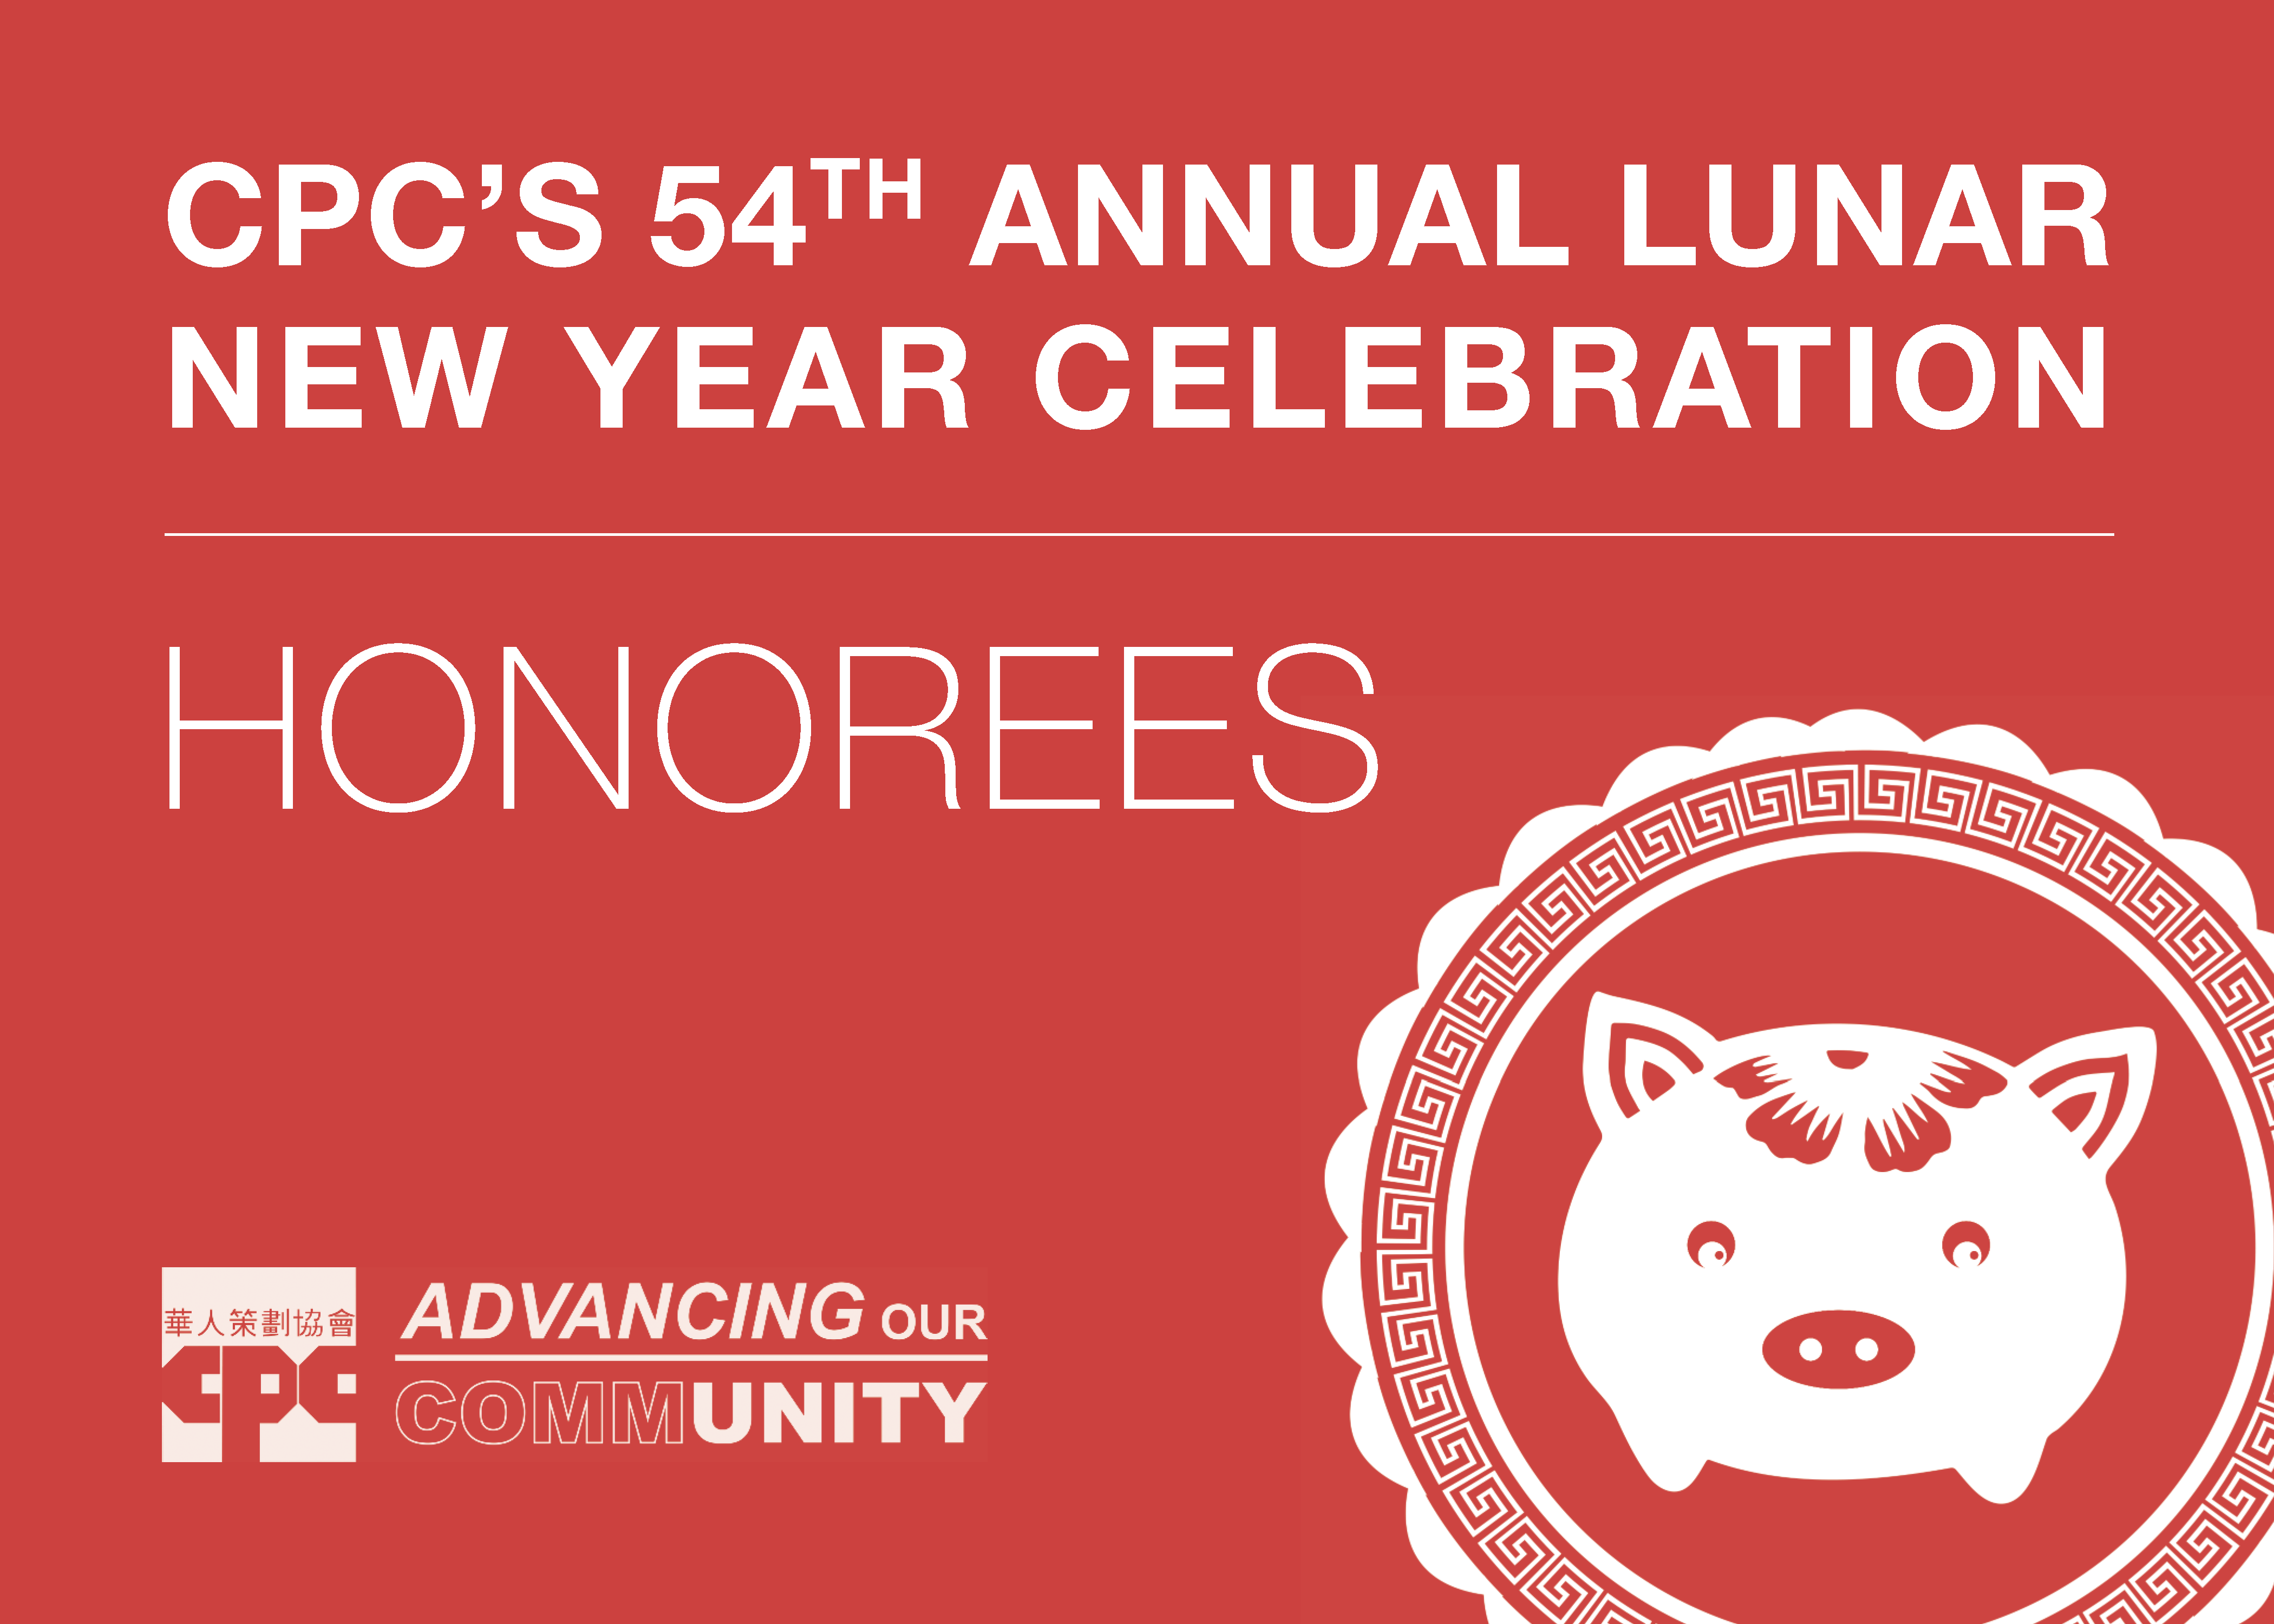 we honor their commitment to advancing our community join us for the award presentation at cpcs 54th annual lunar new year celebration on